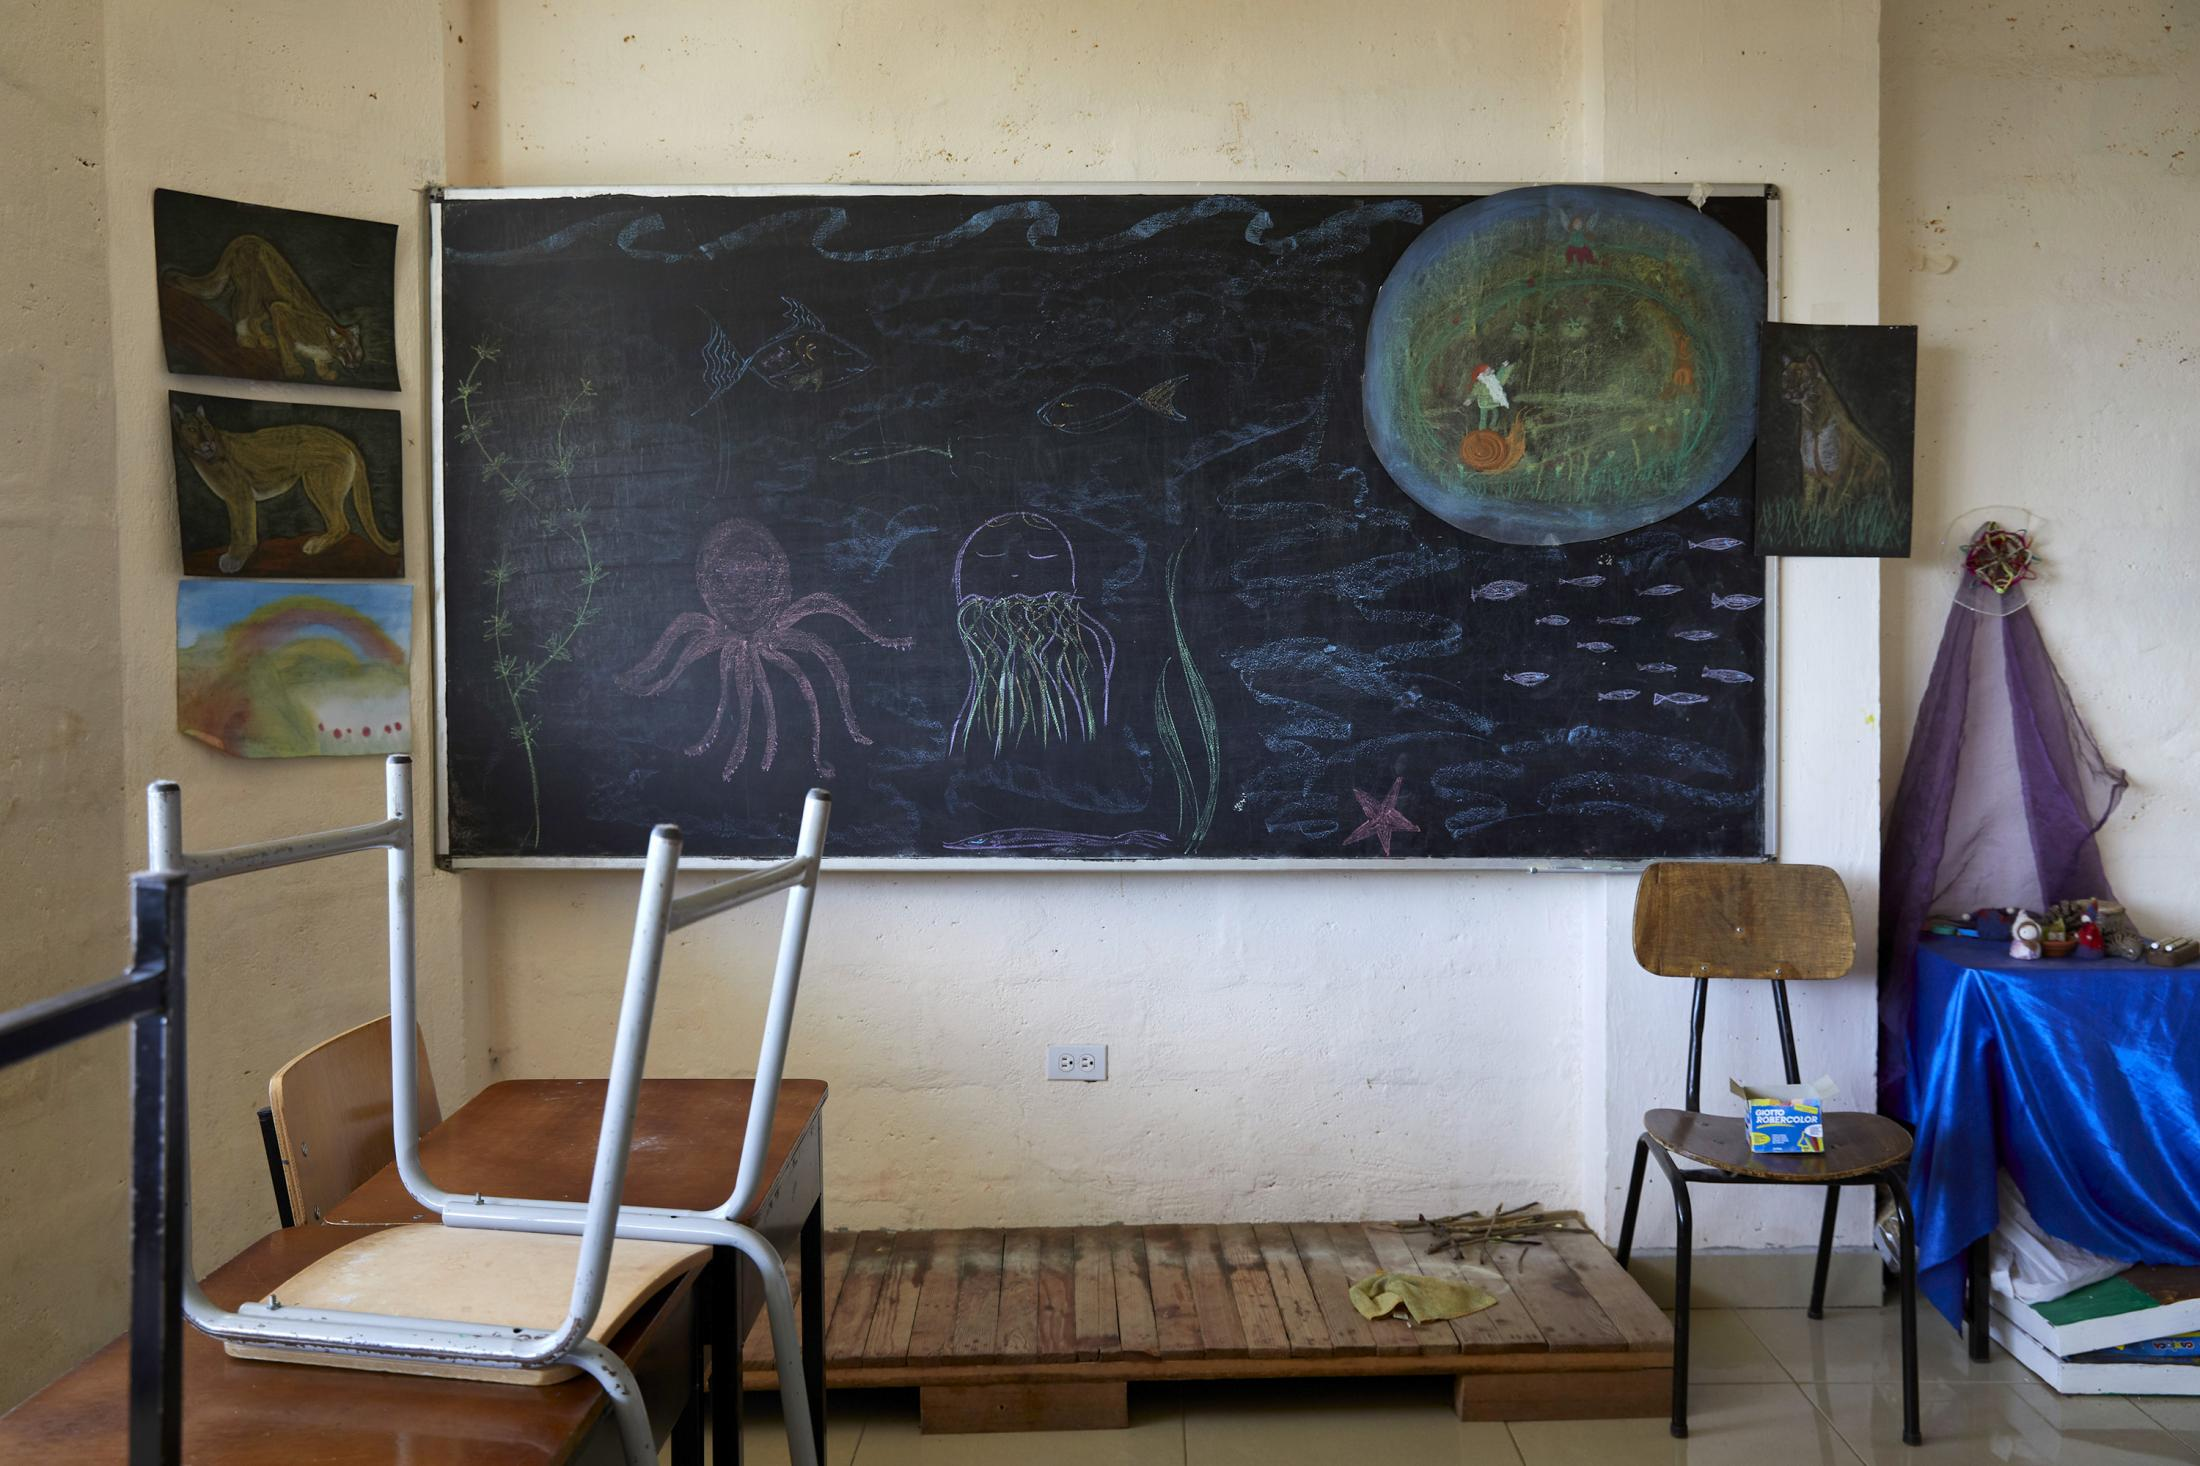 On March 12, 2020, Ecuador declared a state of exception and health emergency, and the schools have remained empty ever since. The Nina Pacha Educational Community is a school based on Waldorf pedagogy, emphasizing children's affective relationships, the development of skills and respect for nature. The school has 190 children of school age. Each teacher decides the best way to continue the educational process of their group of students.